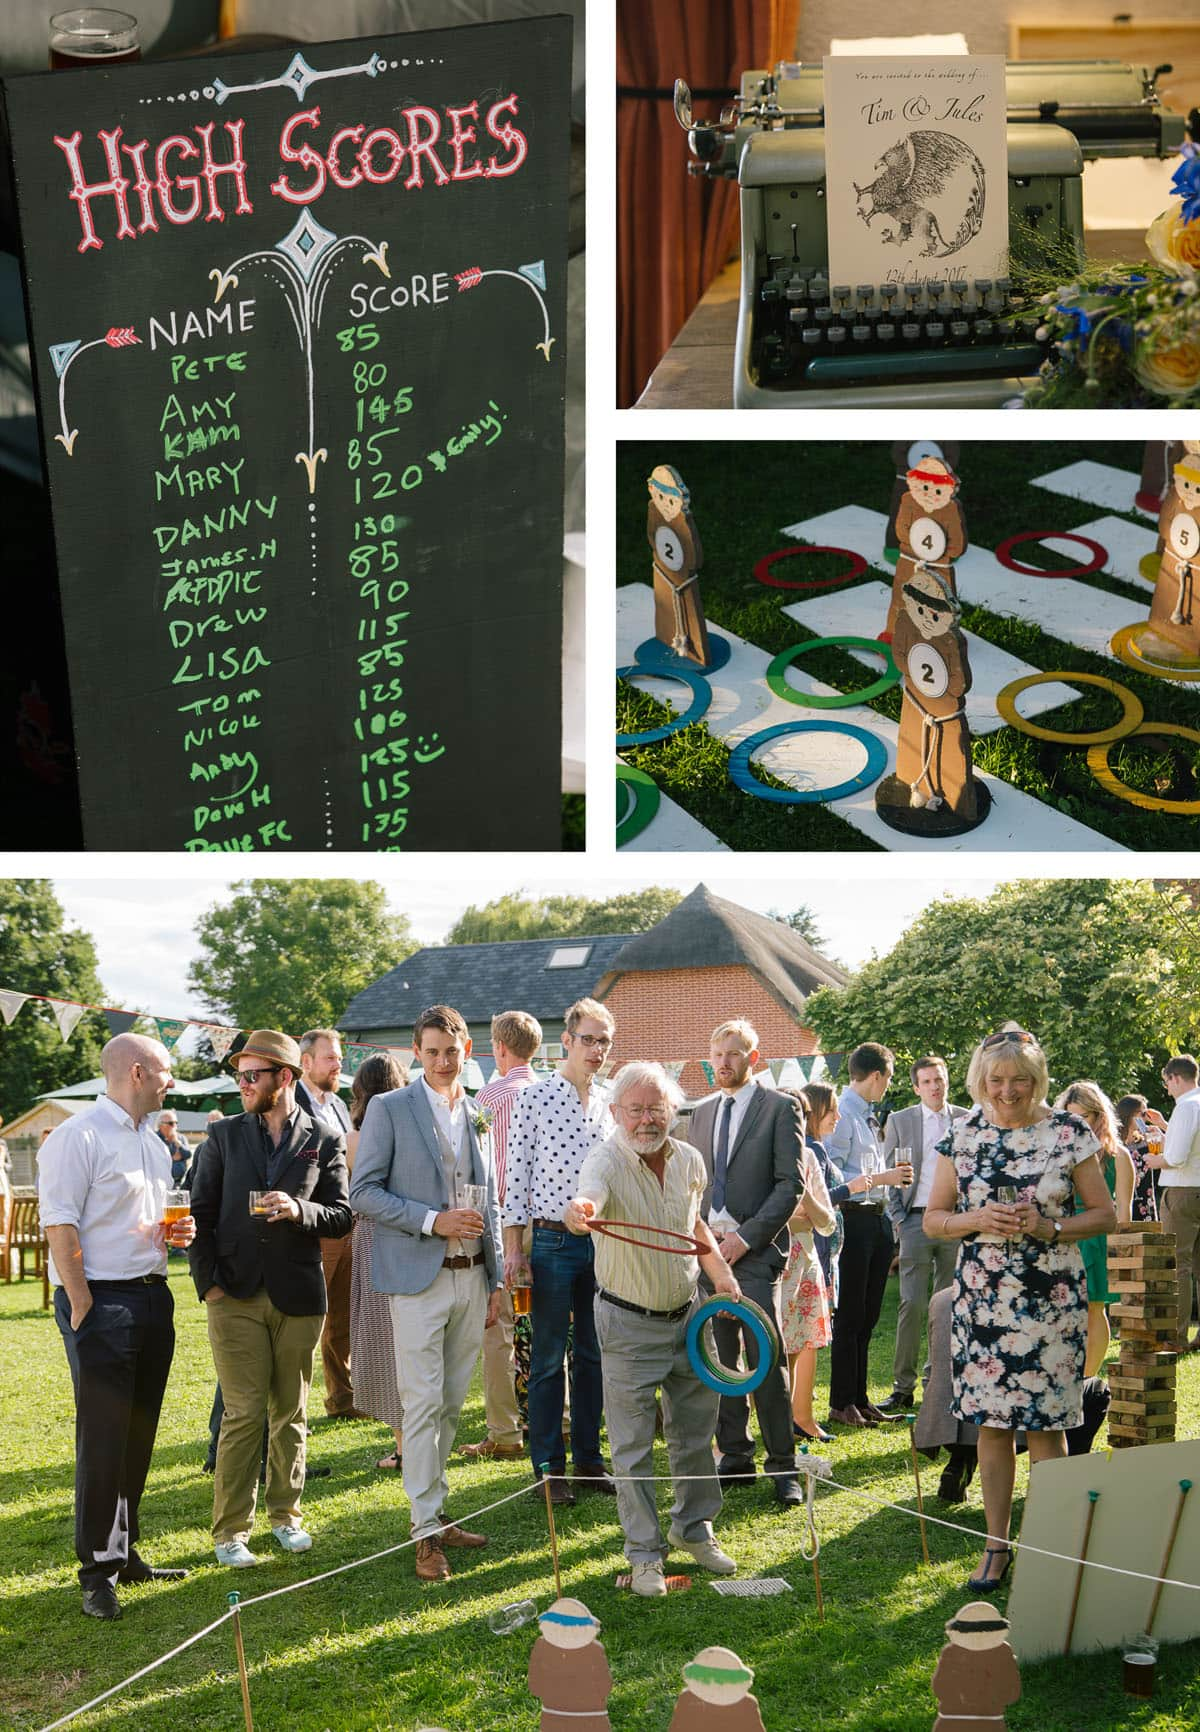 A chalkboard shows the high scorers in the garden games; the guestbook is presented on an old typewriter; hoopla rings lie scattered around the wooden monks